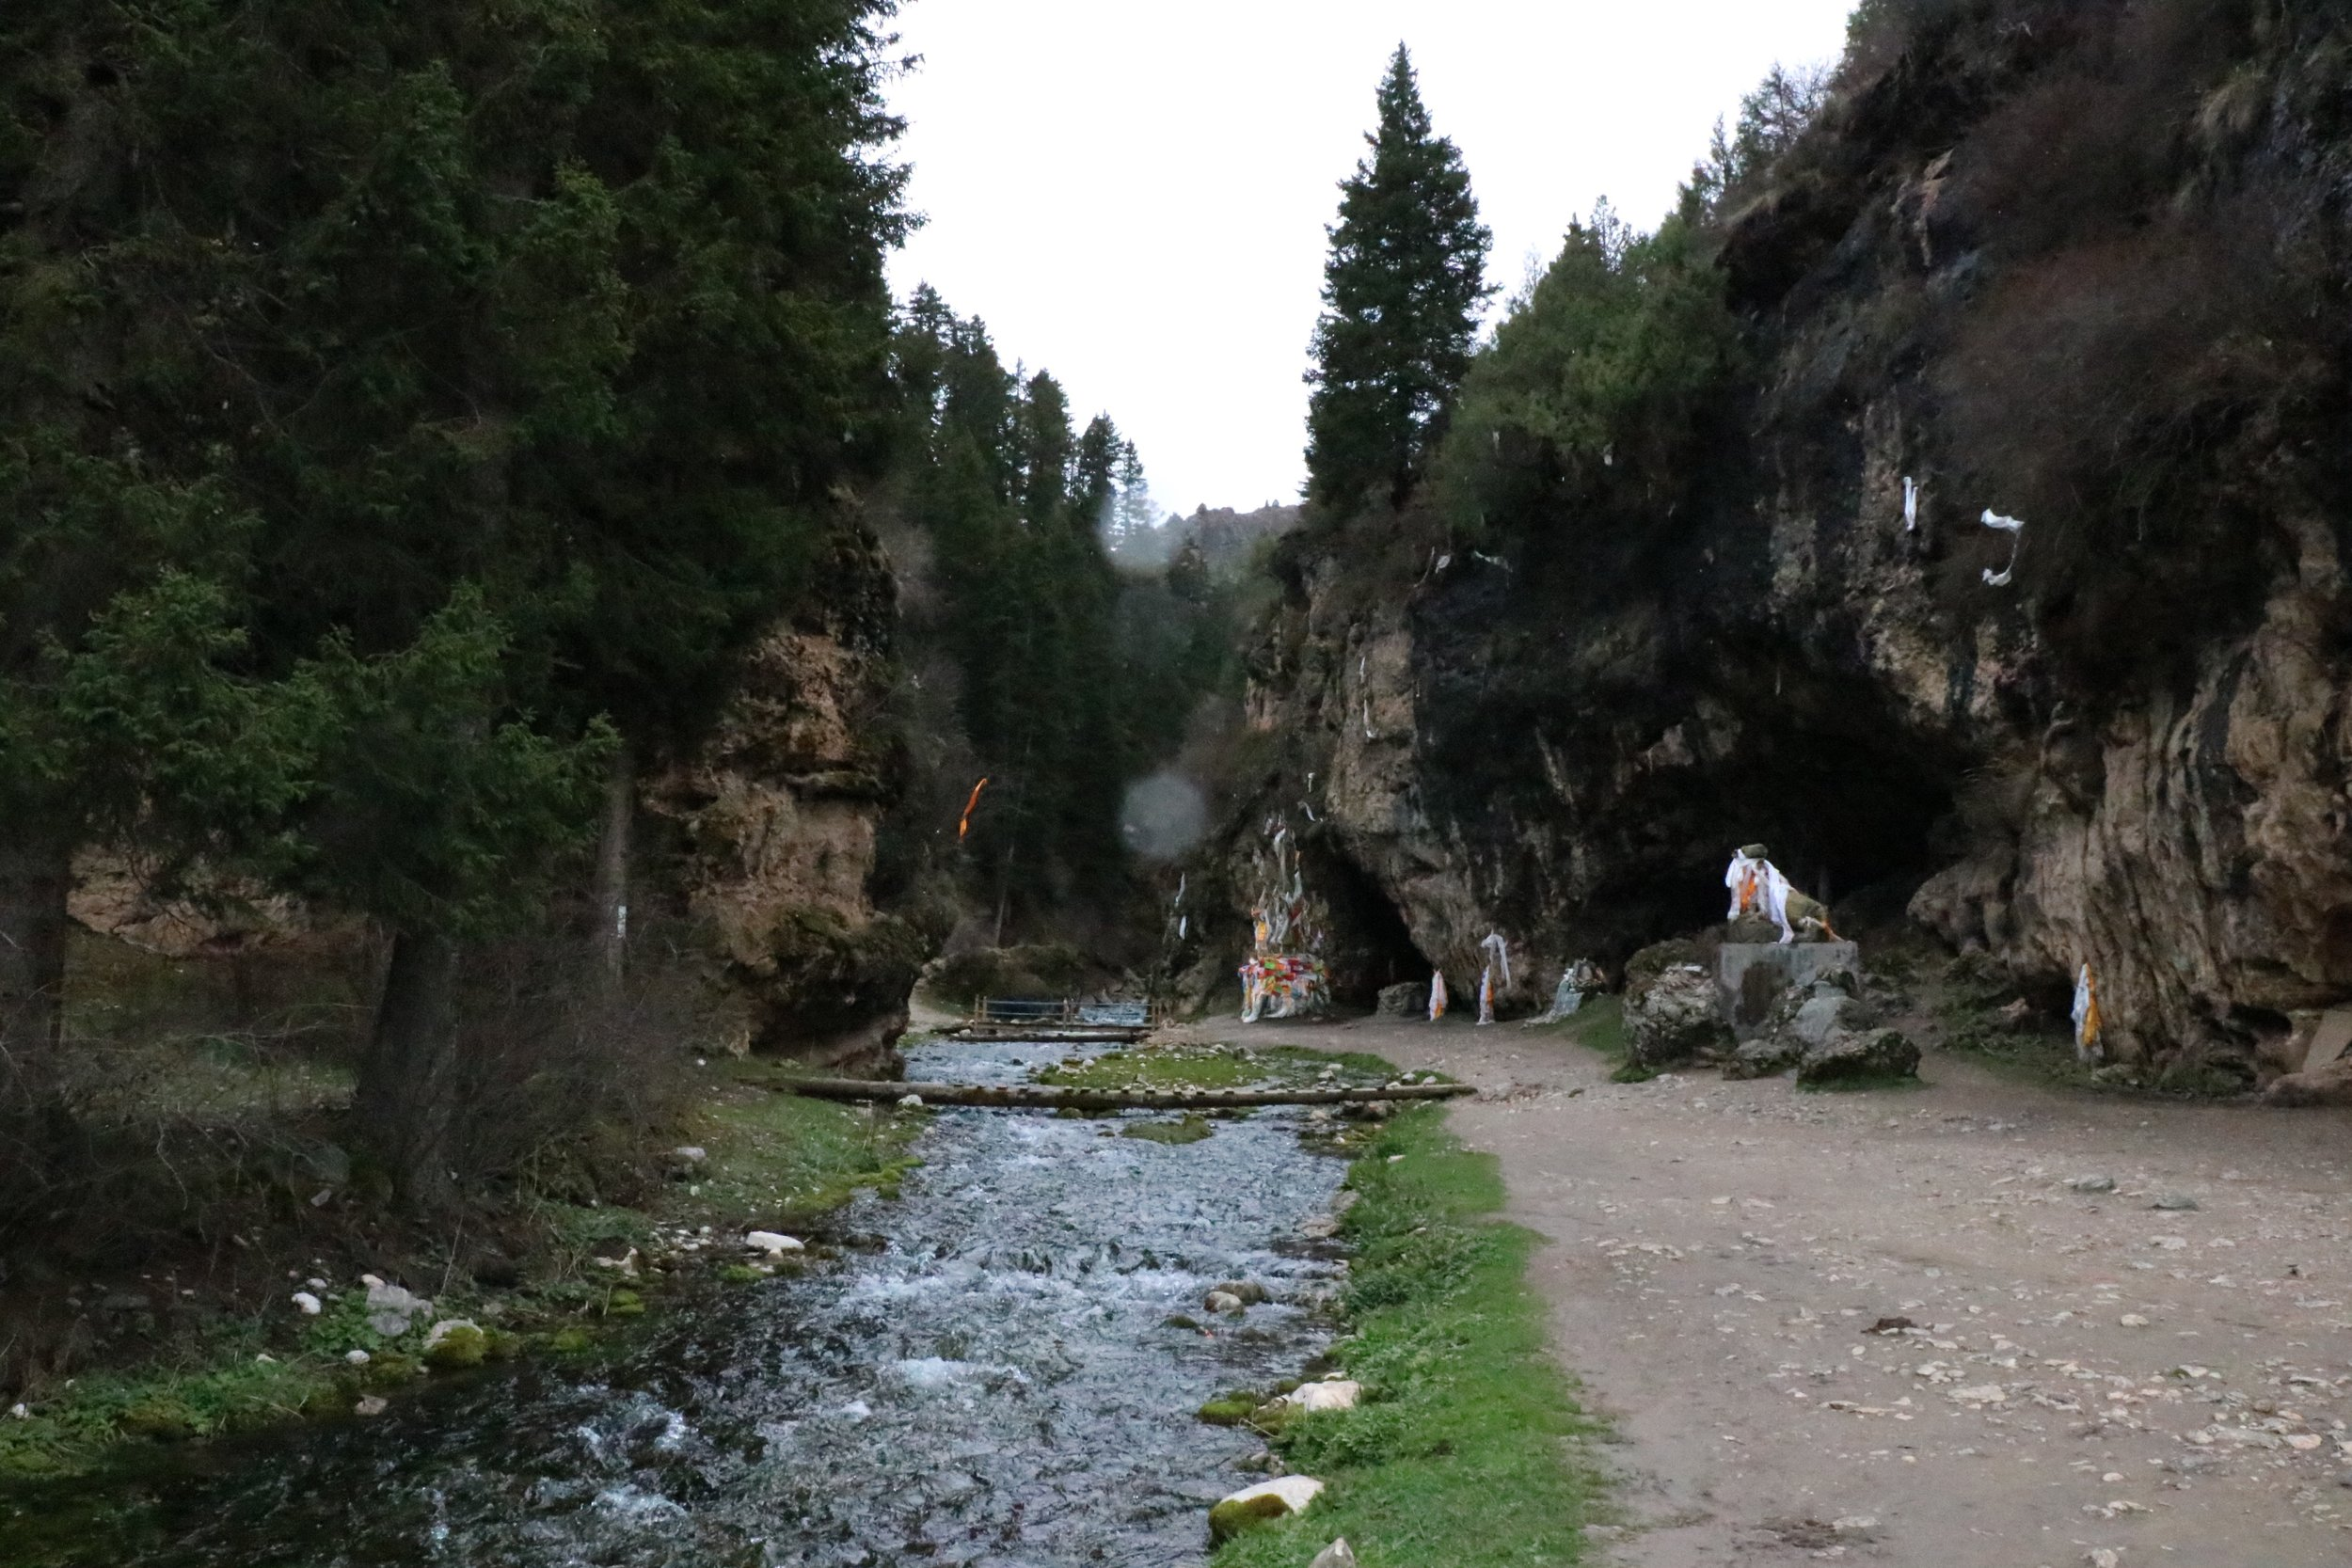 Entrance to Namo Gorge.